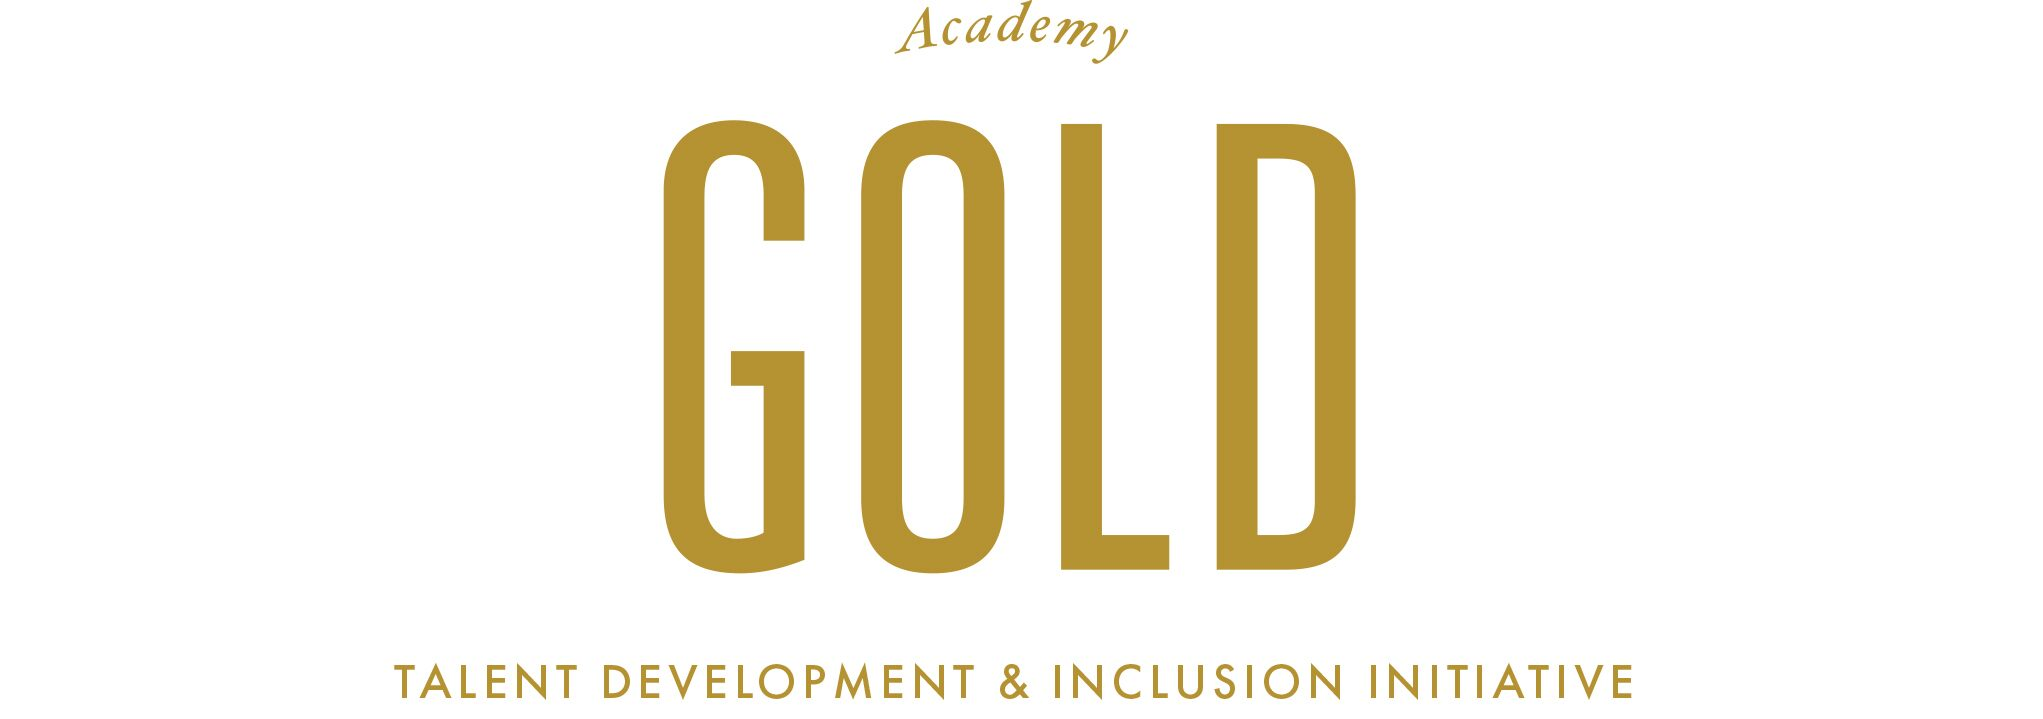 Academy Gold Talent Development and Inclusion Initiative